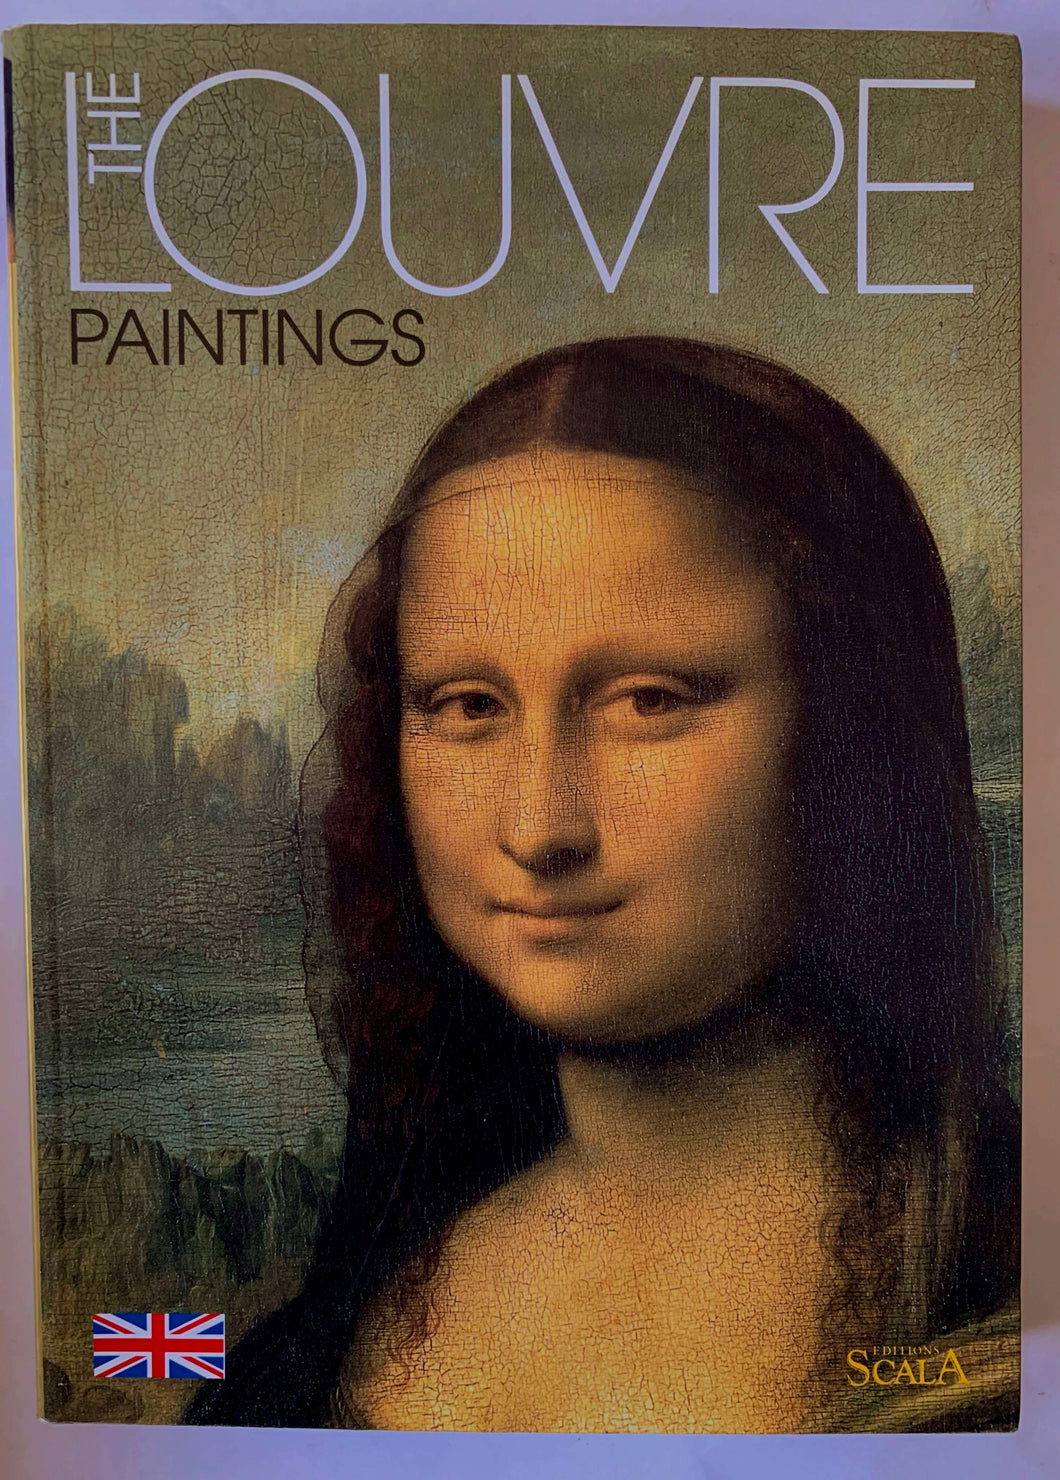 The Louvre Paitings